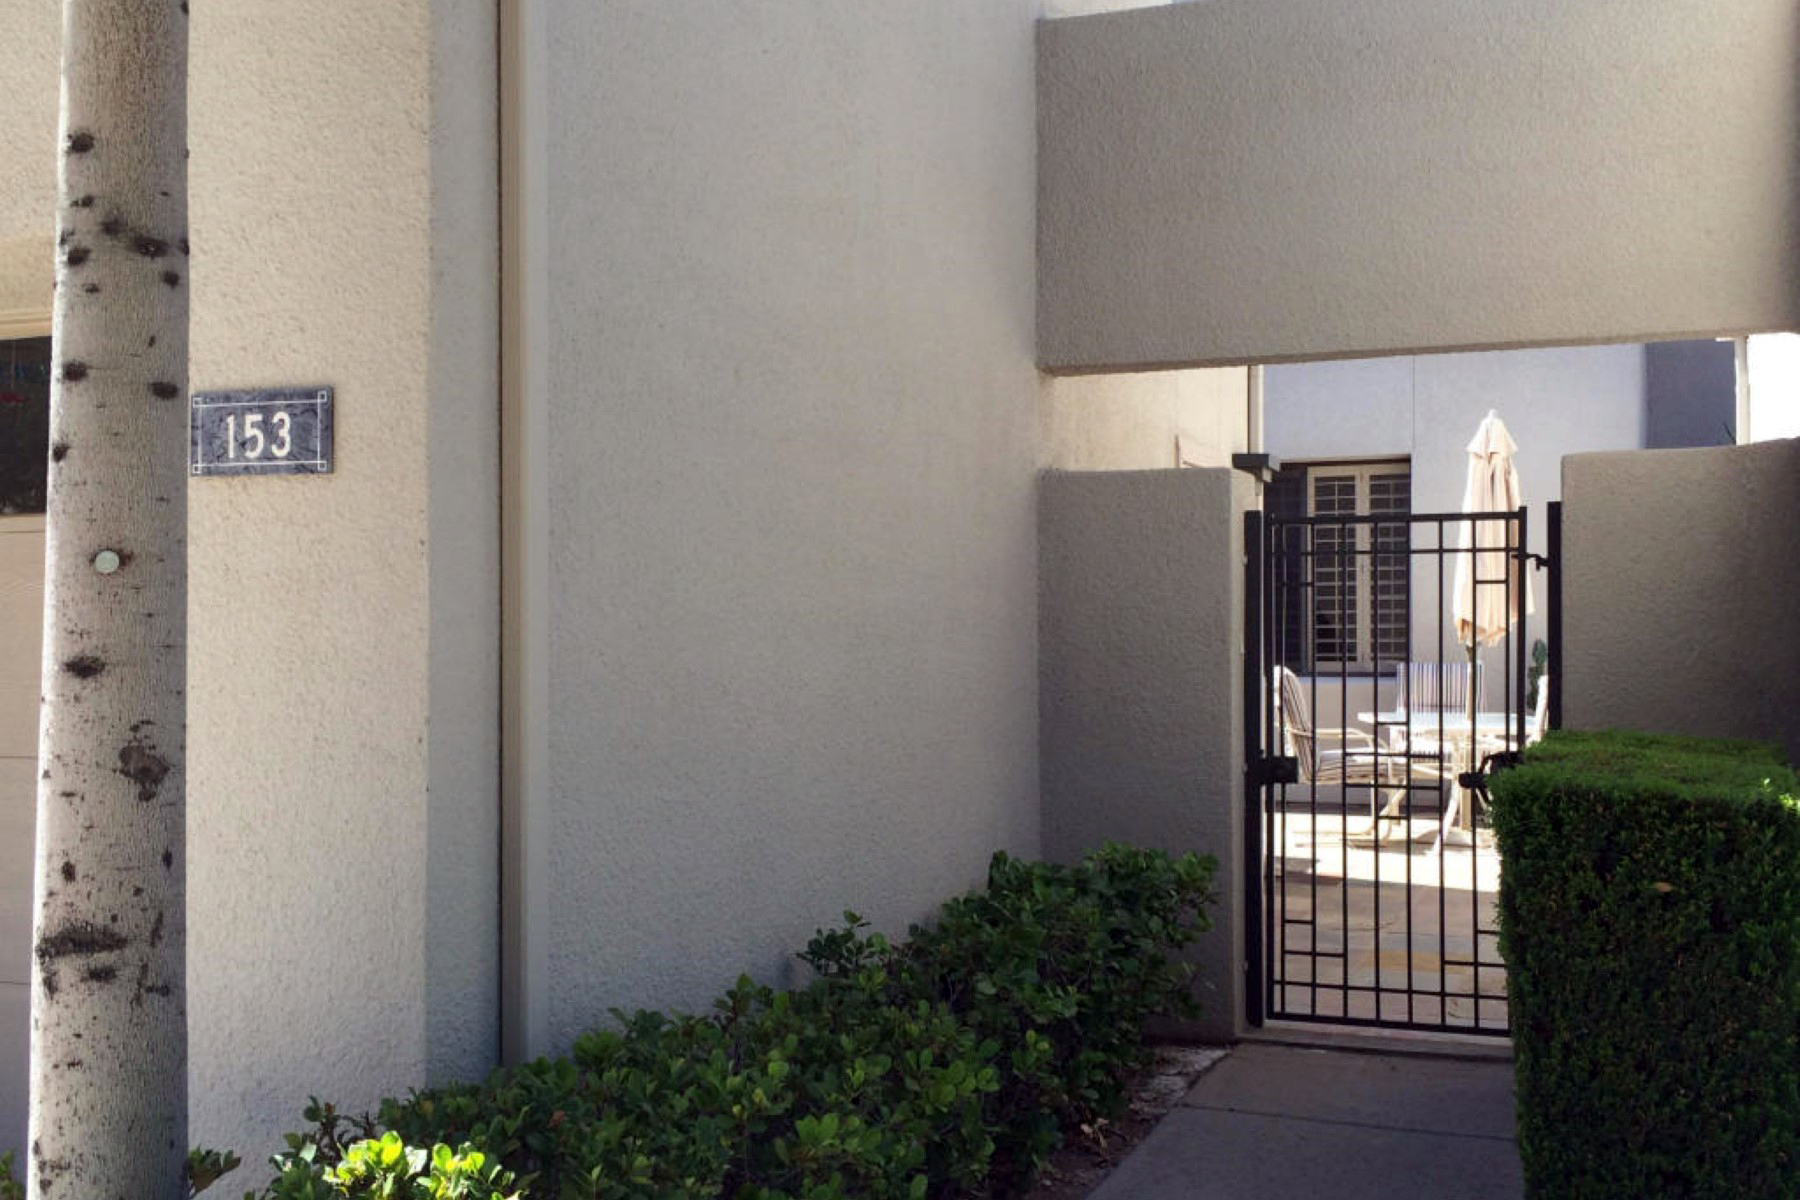 Nhà phố vì Bán tại Completely Remodeled Luxury Townhome in Gainey Ranch 7700 E Gainey Ranch Rd #153 Scottsdale, Arizona 85258 Hoa Kỳ